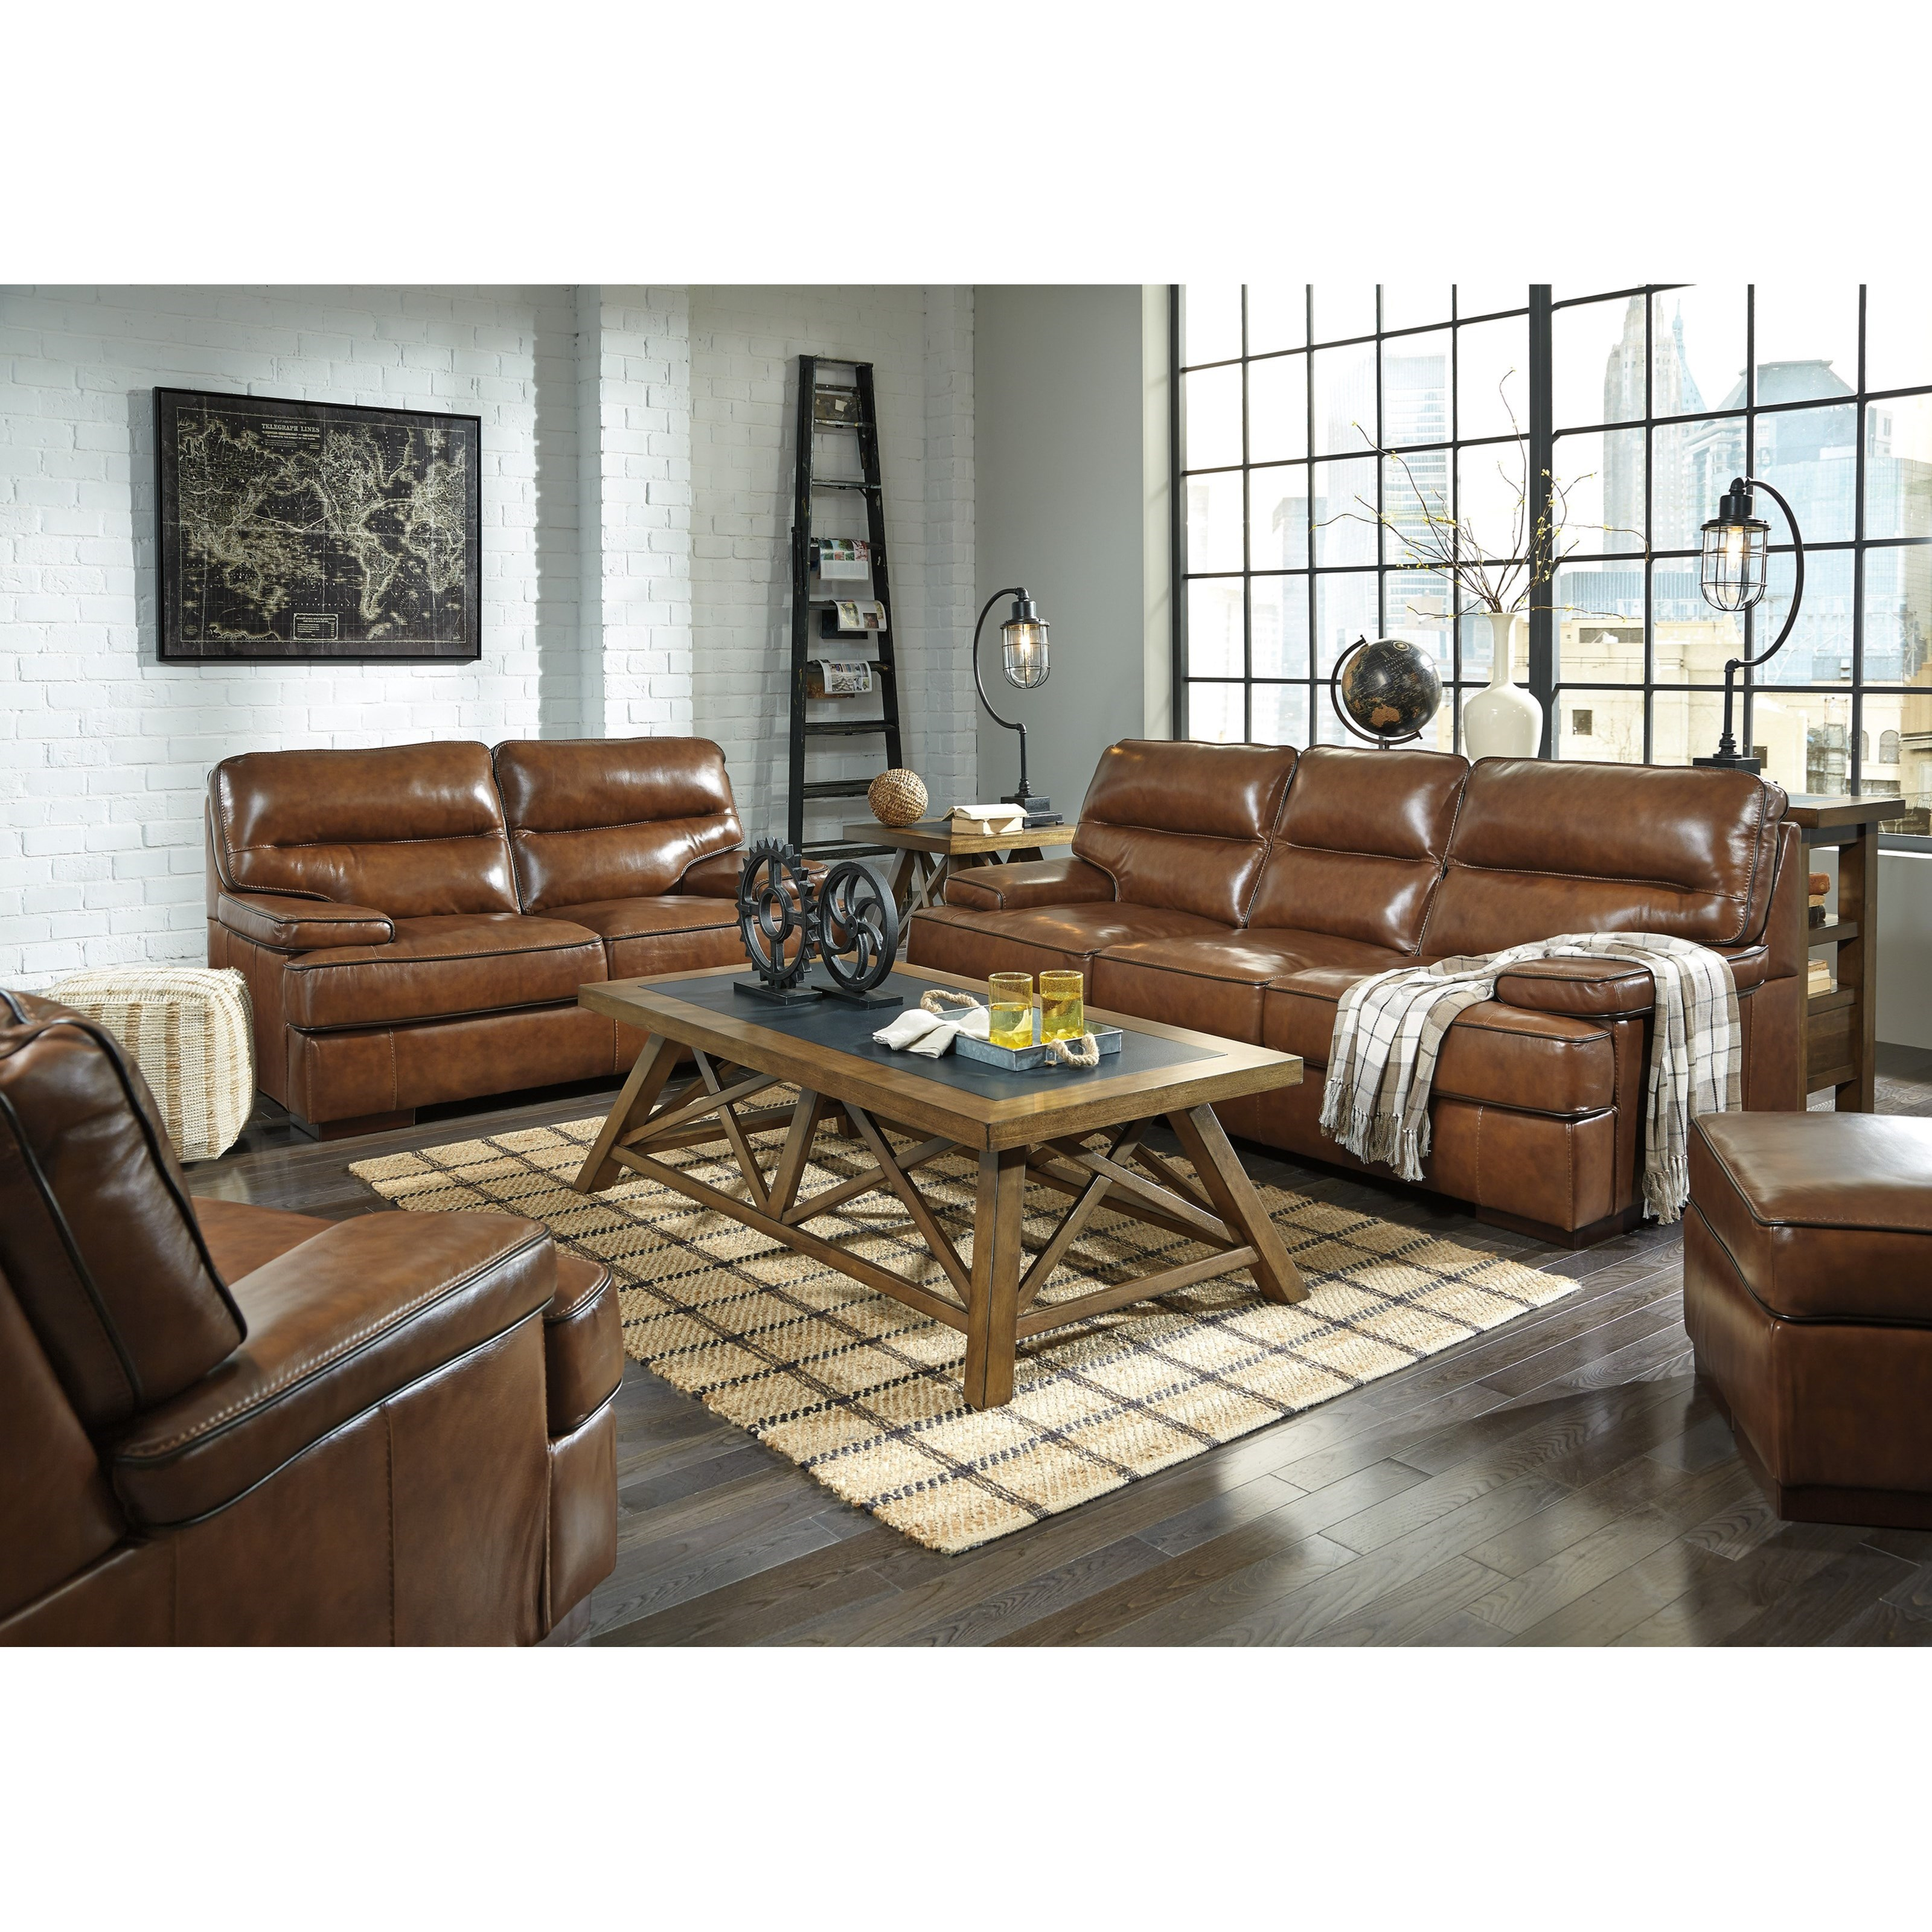 Living room group olindes furniture stationary living room groups